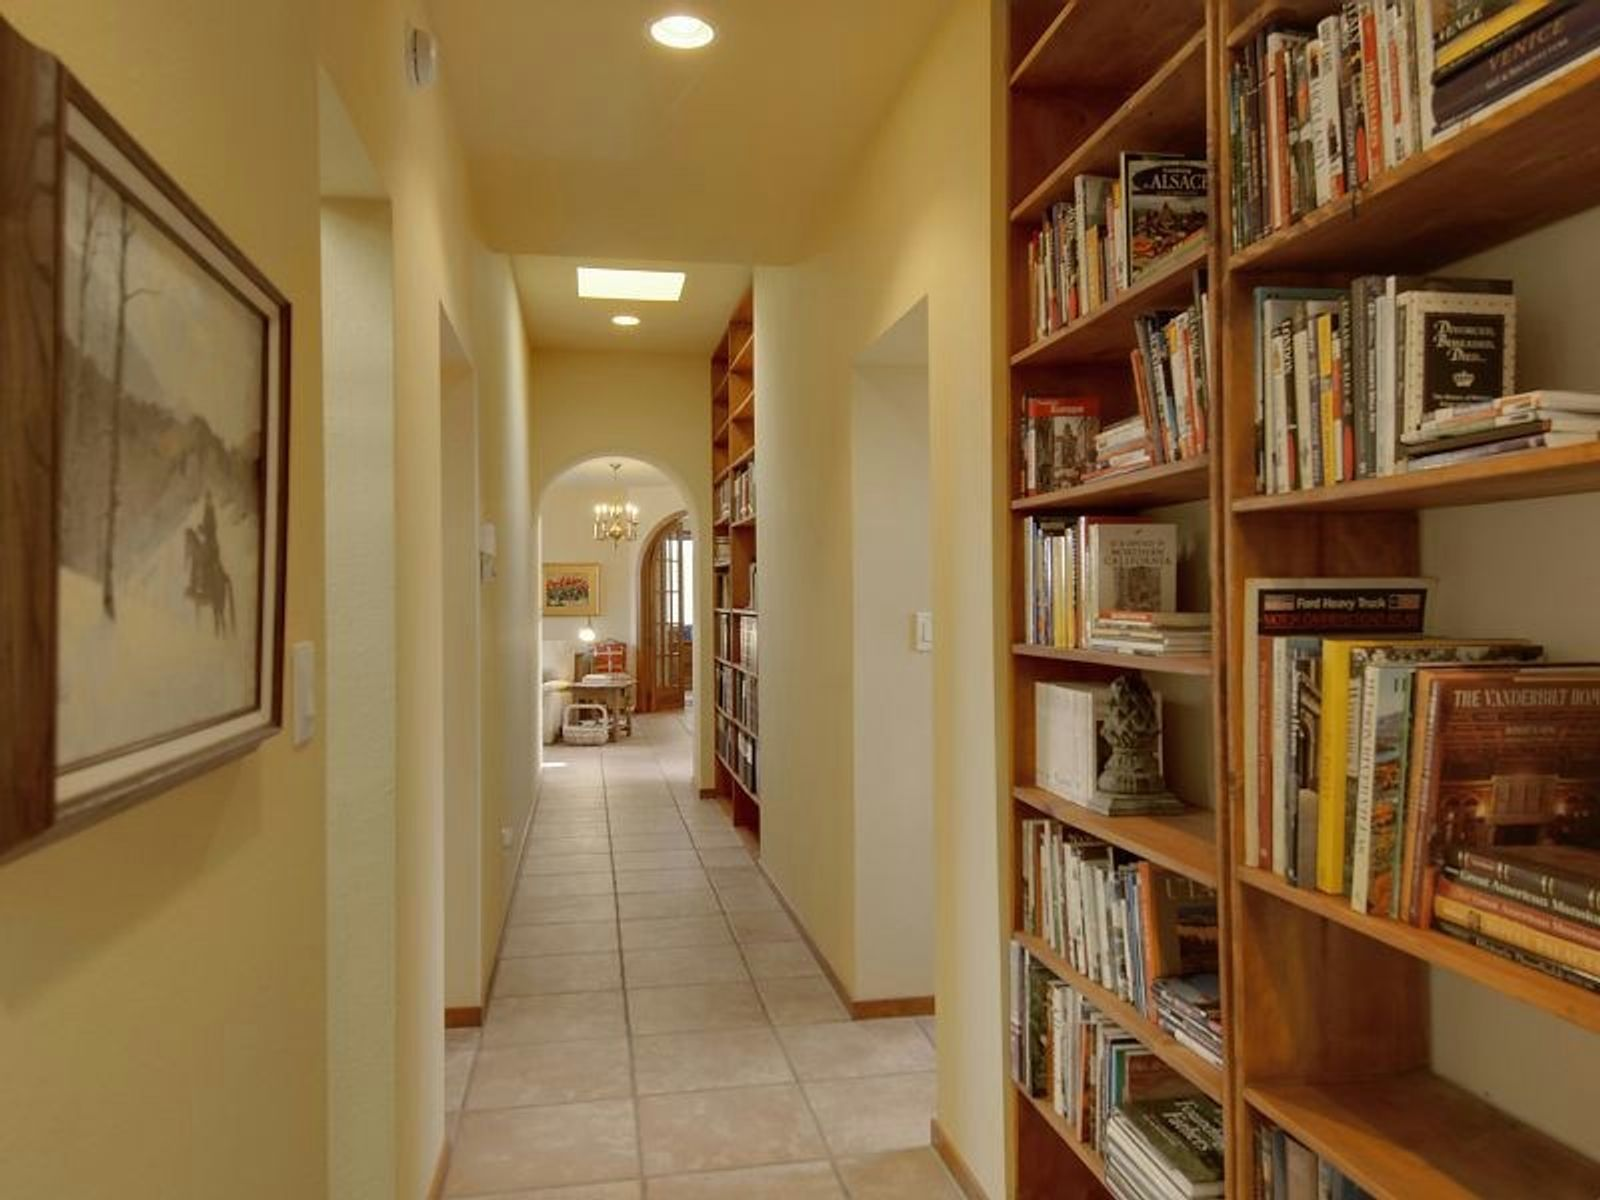 Hall lined with built-in bookshelves